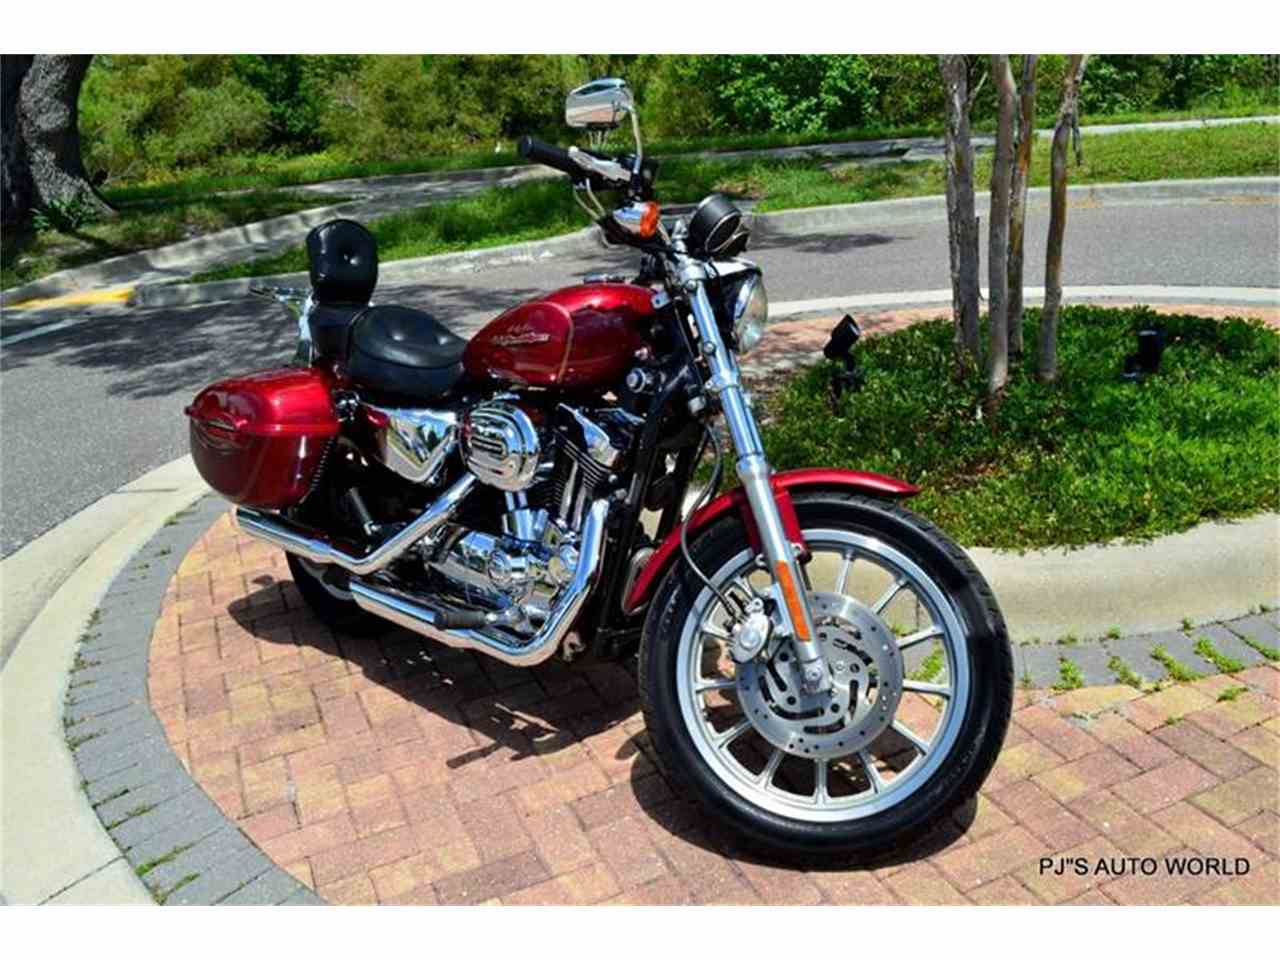 Large Picture of '04 Harley-Davidson Sportster located in Florida Offered by PJ's Auto World - 91G4